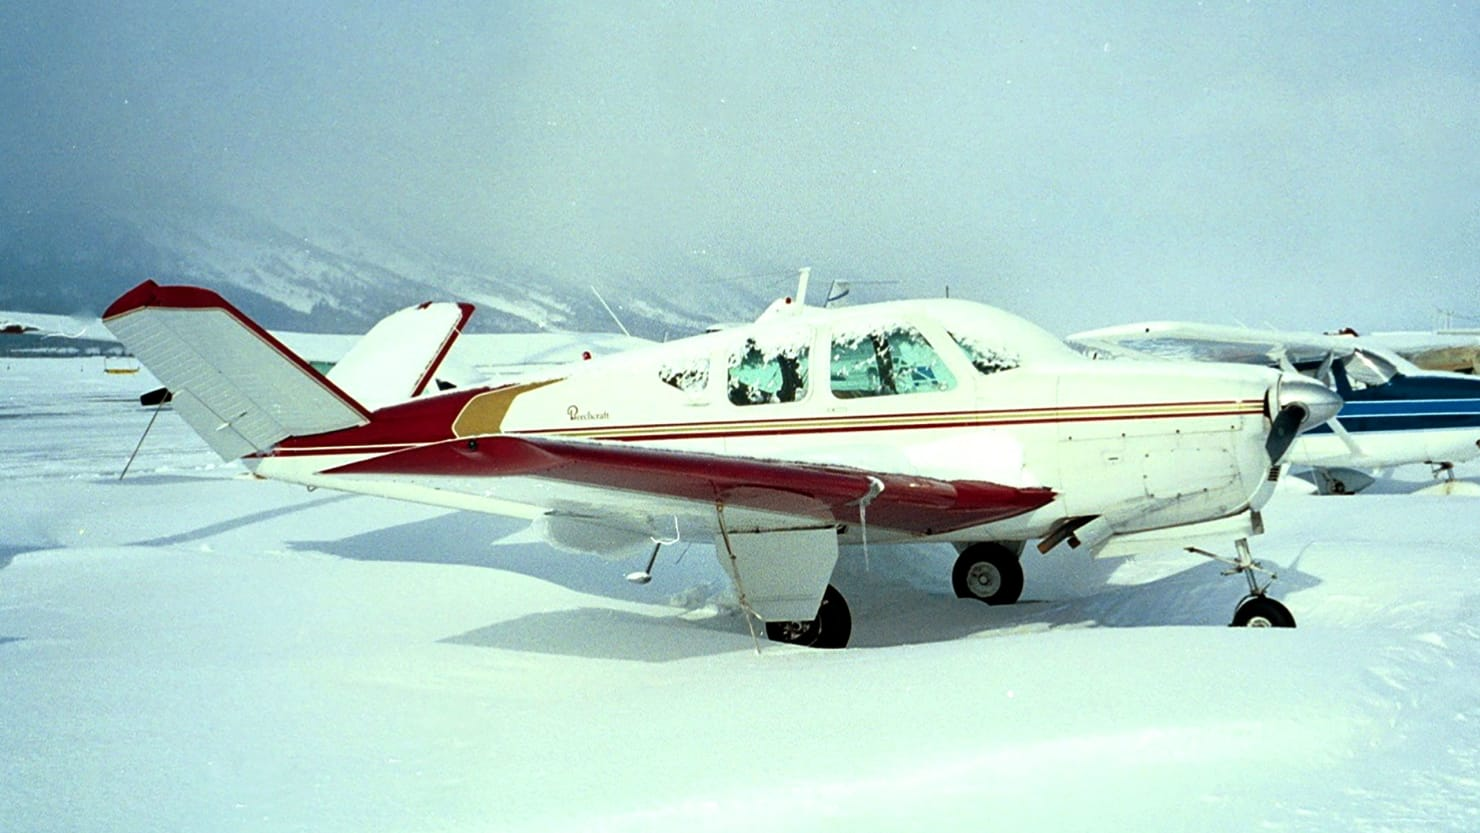 Snow Fall: The Plane Went Down With His Wife, His Kid... and a Secret